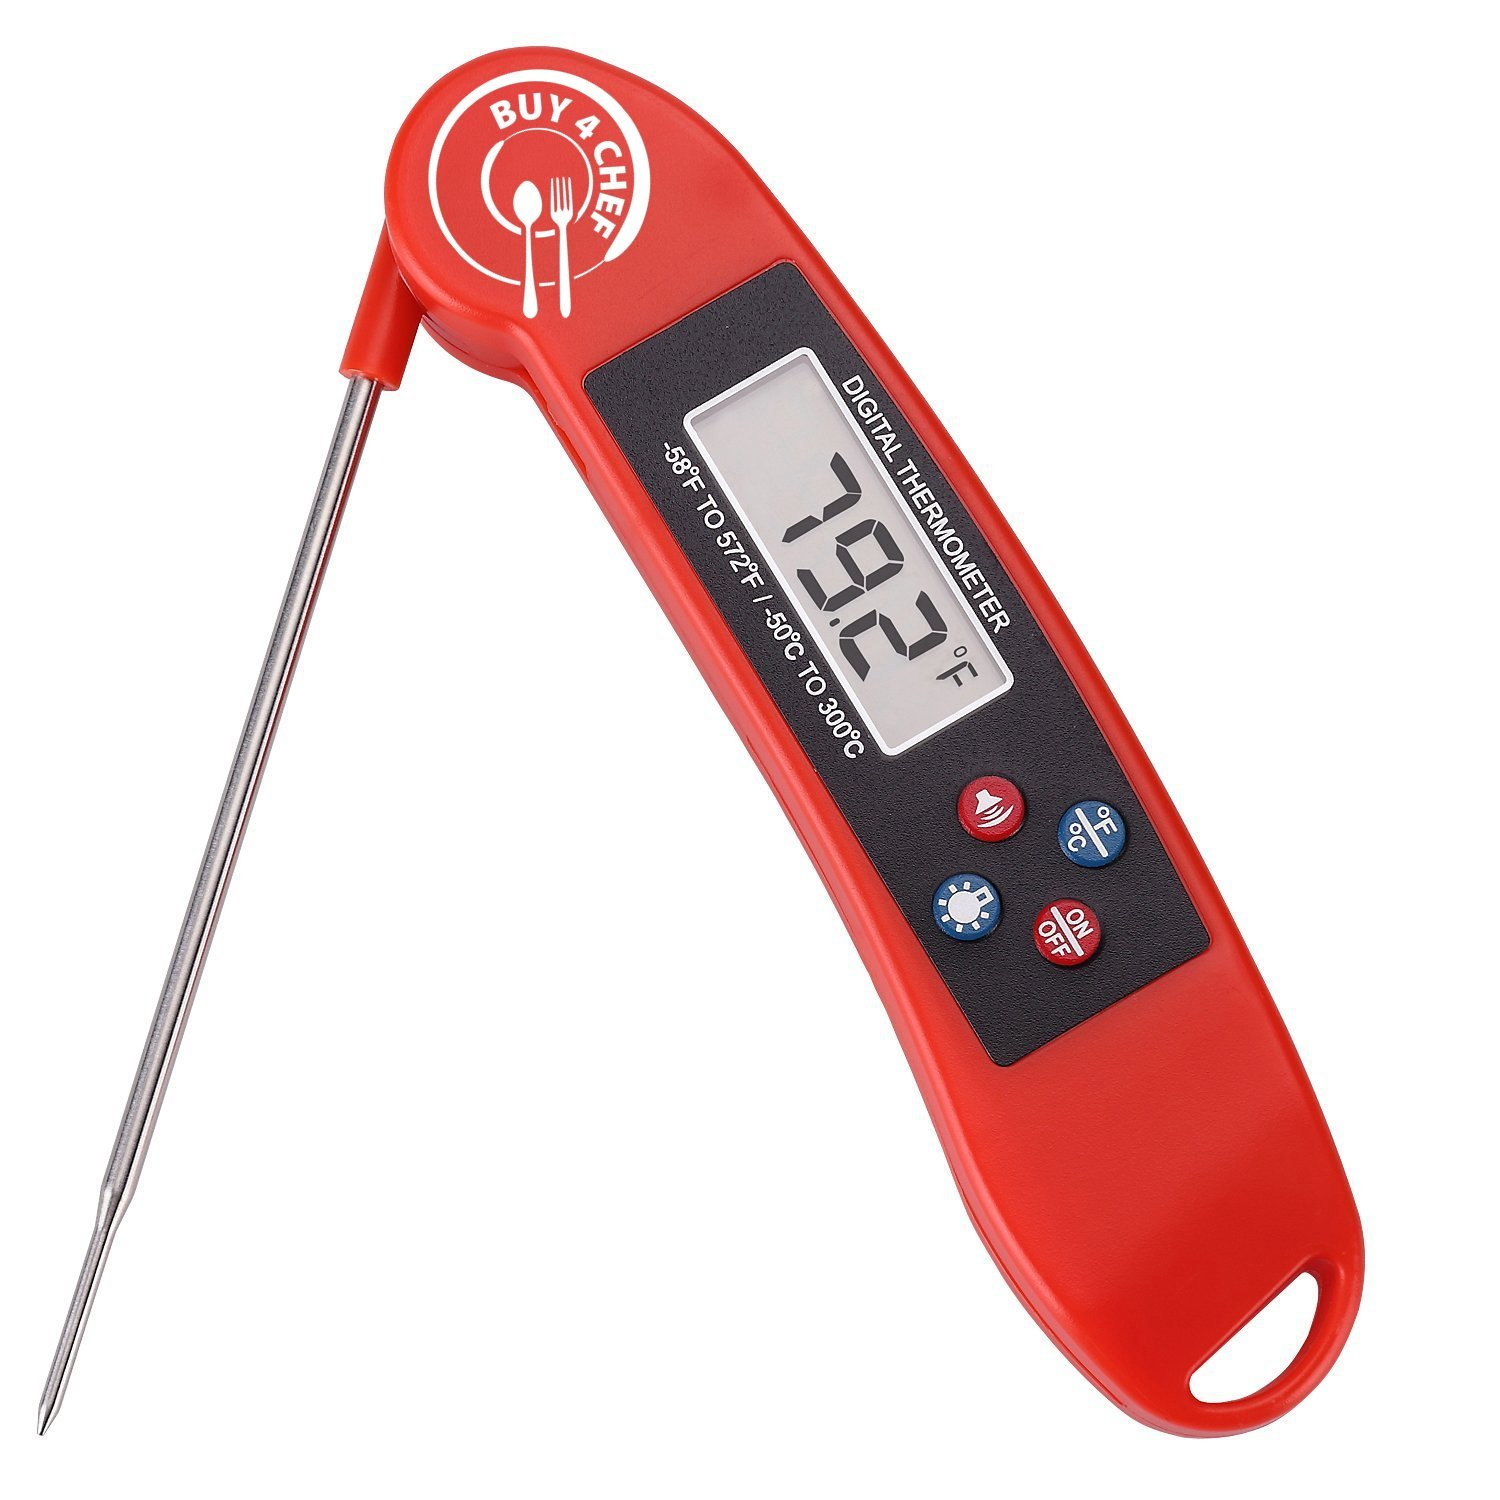 Buy4Chef Talking, Instant Read Digital Food Thermometer with Back Light | Food Grade Stainless Steel Probe & Durable Plastic Housing | Bonus Meat Temperature Guide